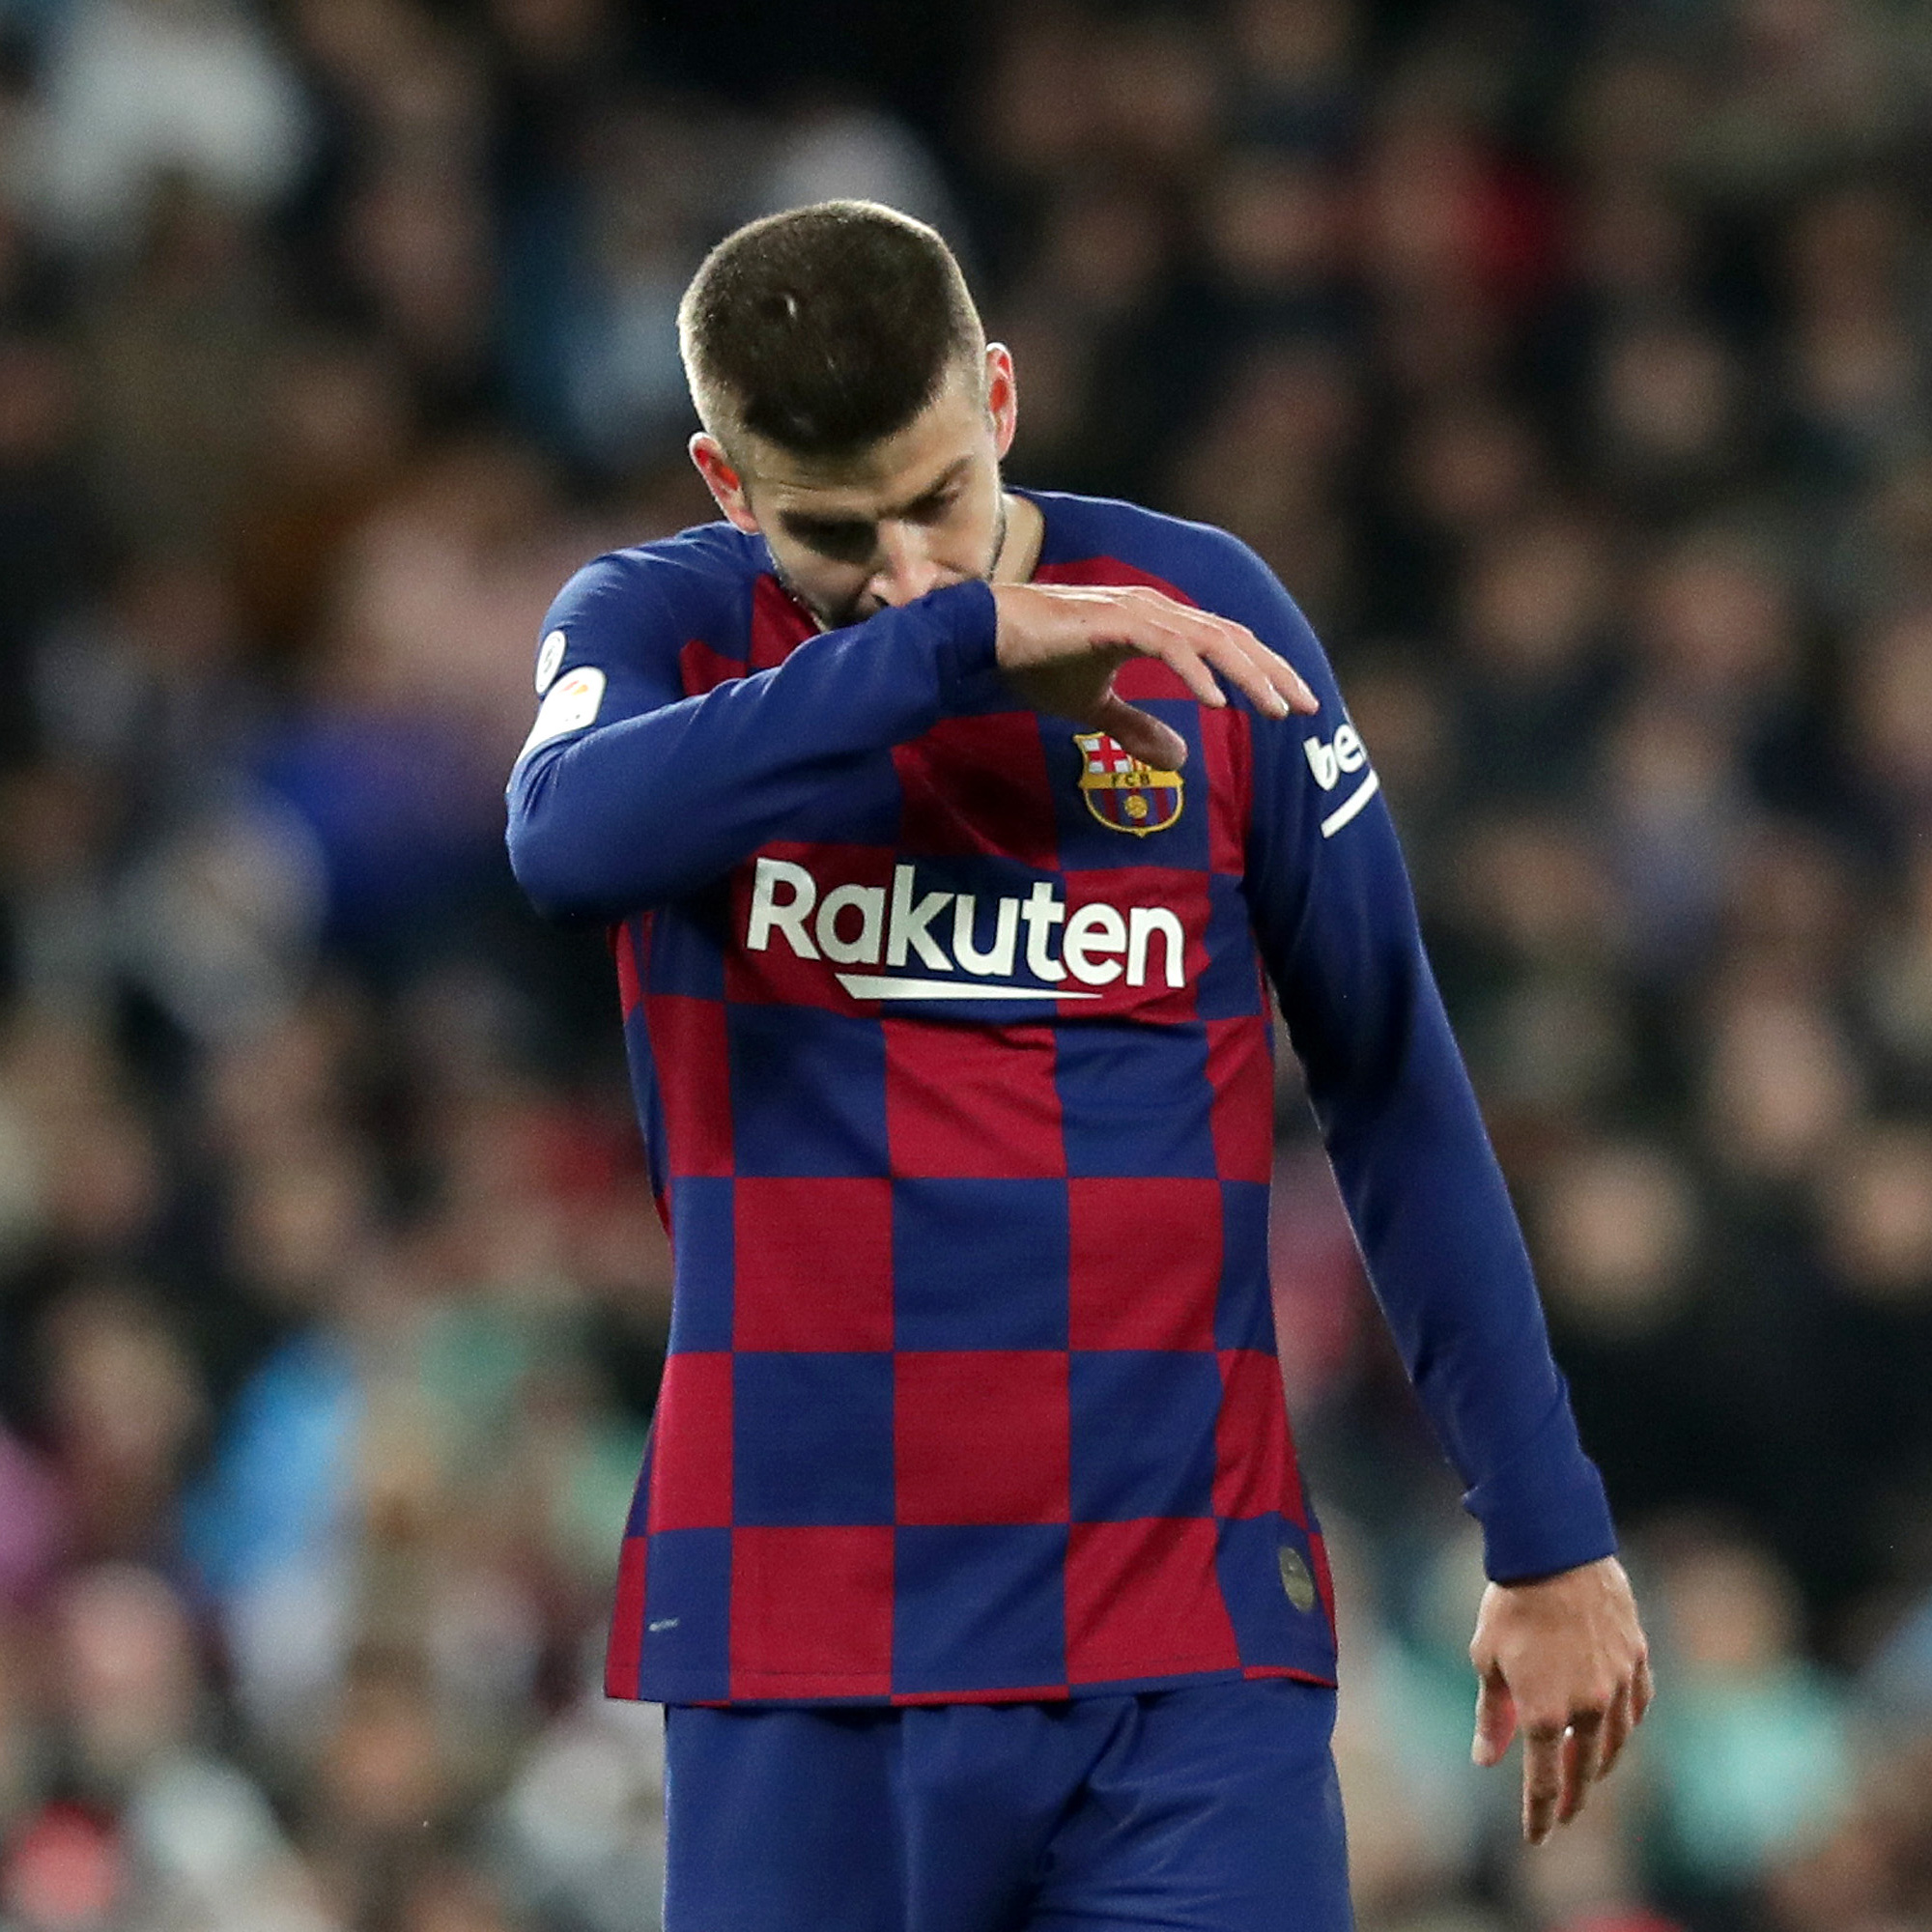 Barcleona's Gerard Pique calls for unity in fighting Covid 19